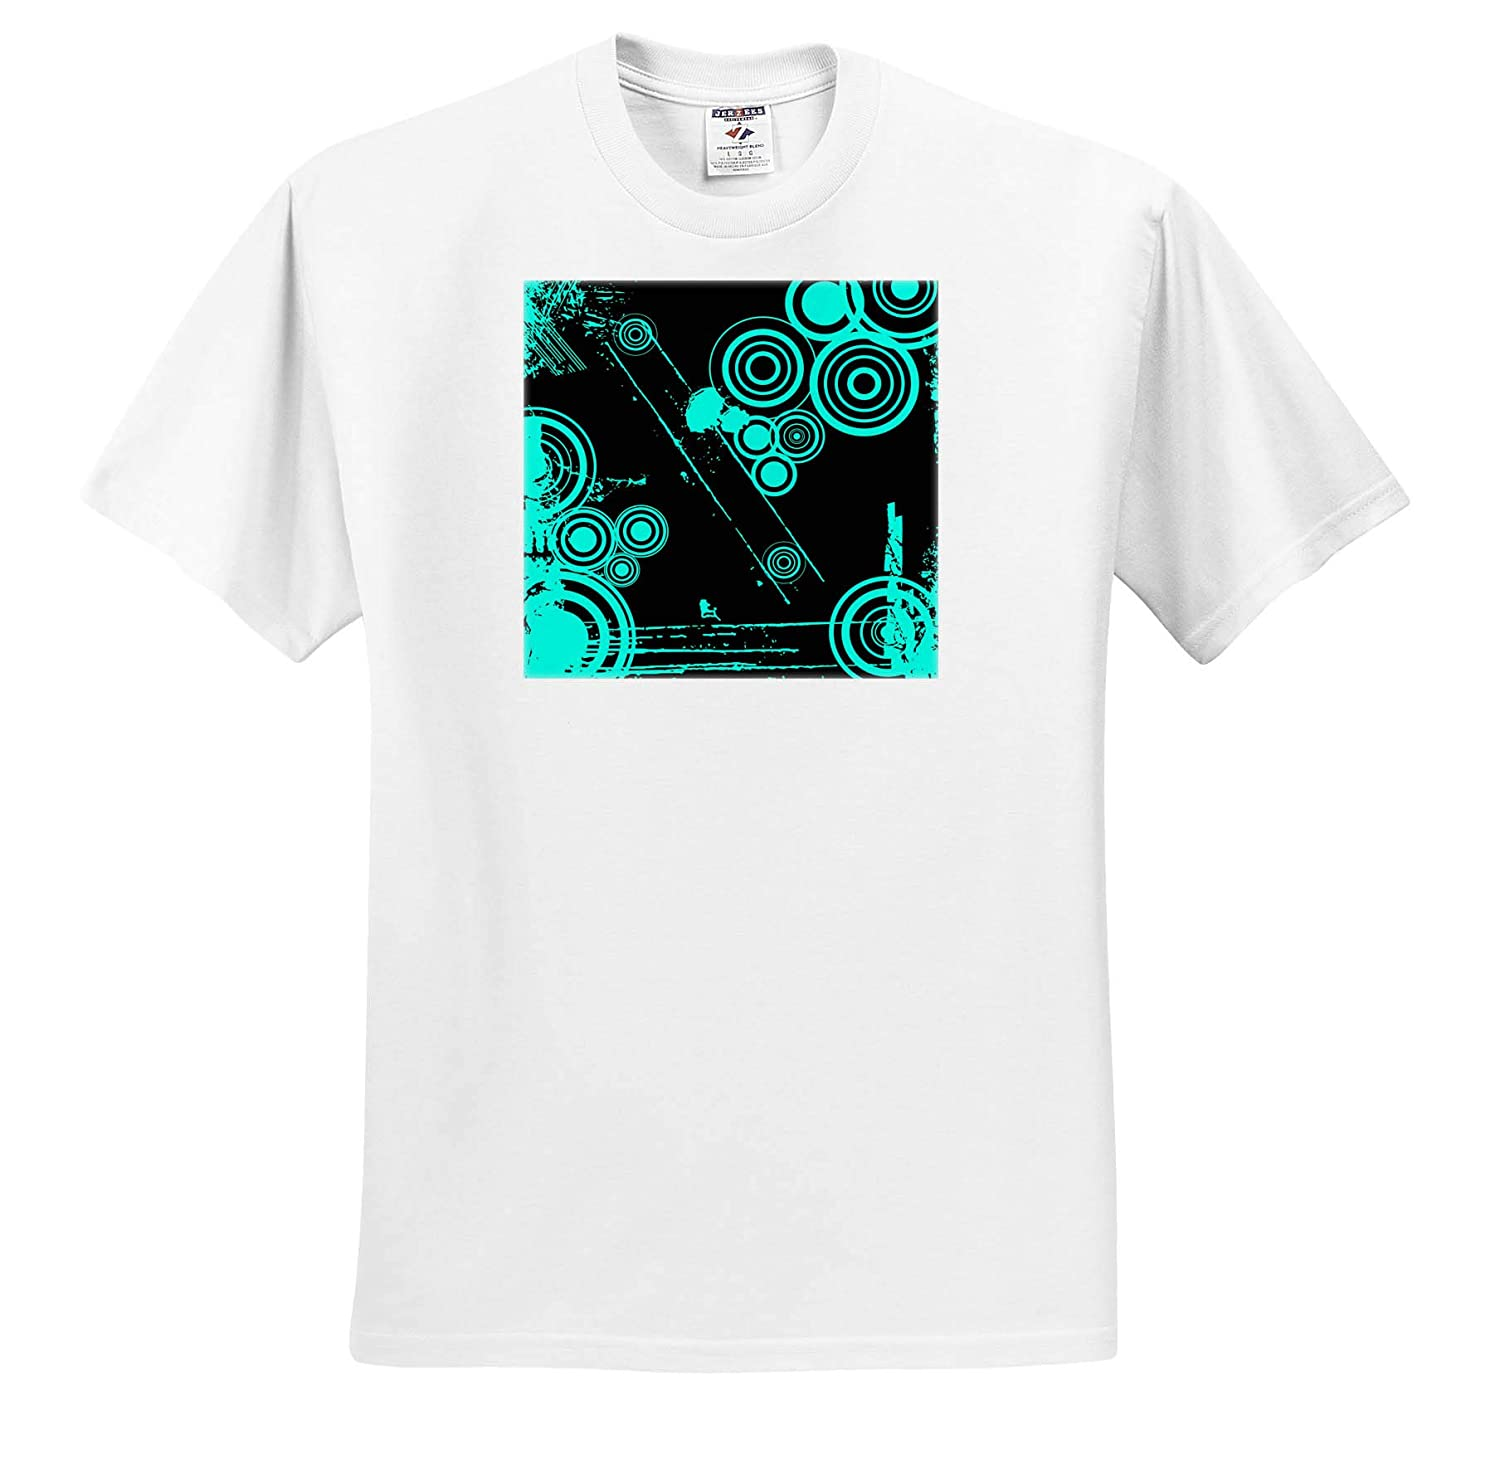 3dRose Russ Billington Designs T-Shirts Mod Retro Distressed Circles in Turquoise and Black